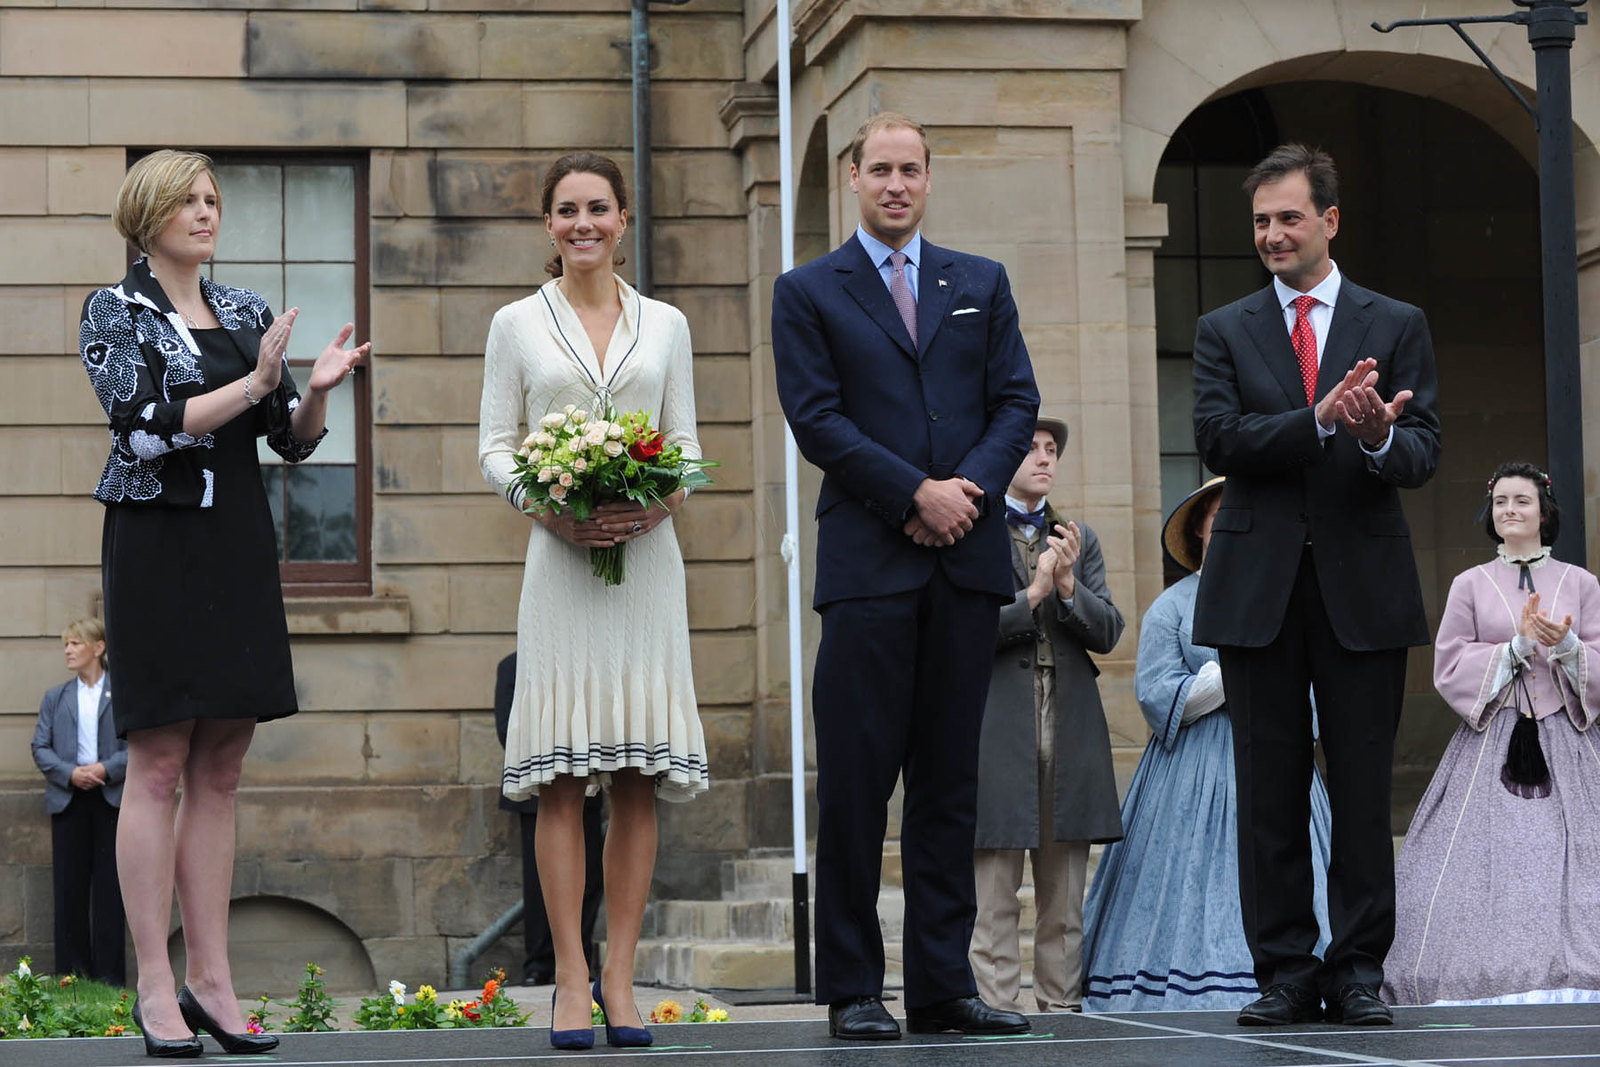 the Duchess of cambridge in white Alexander McQueen for Prince Edward Island